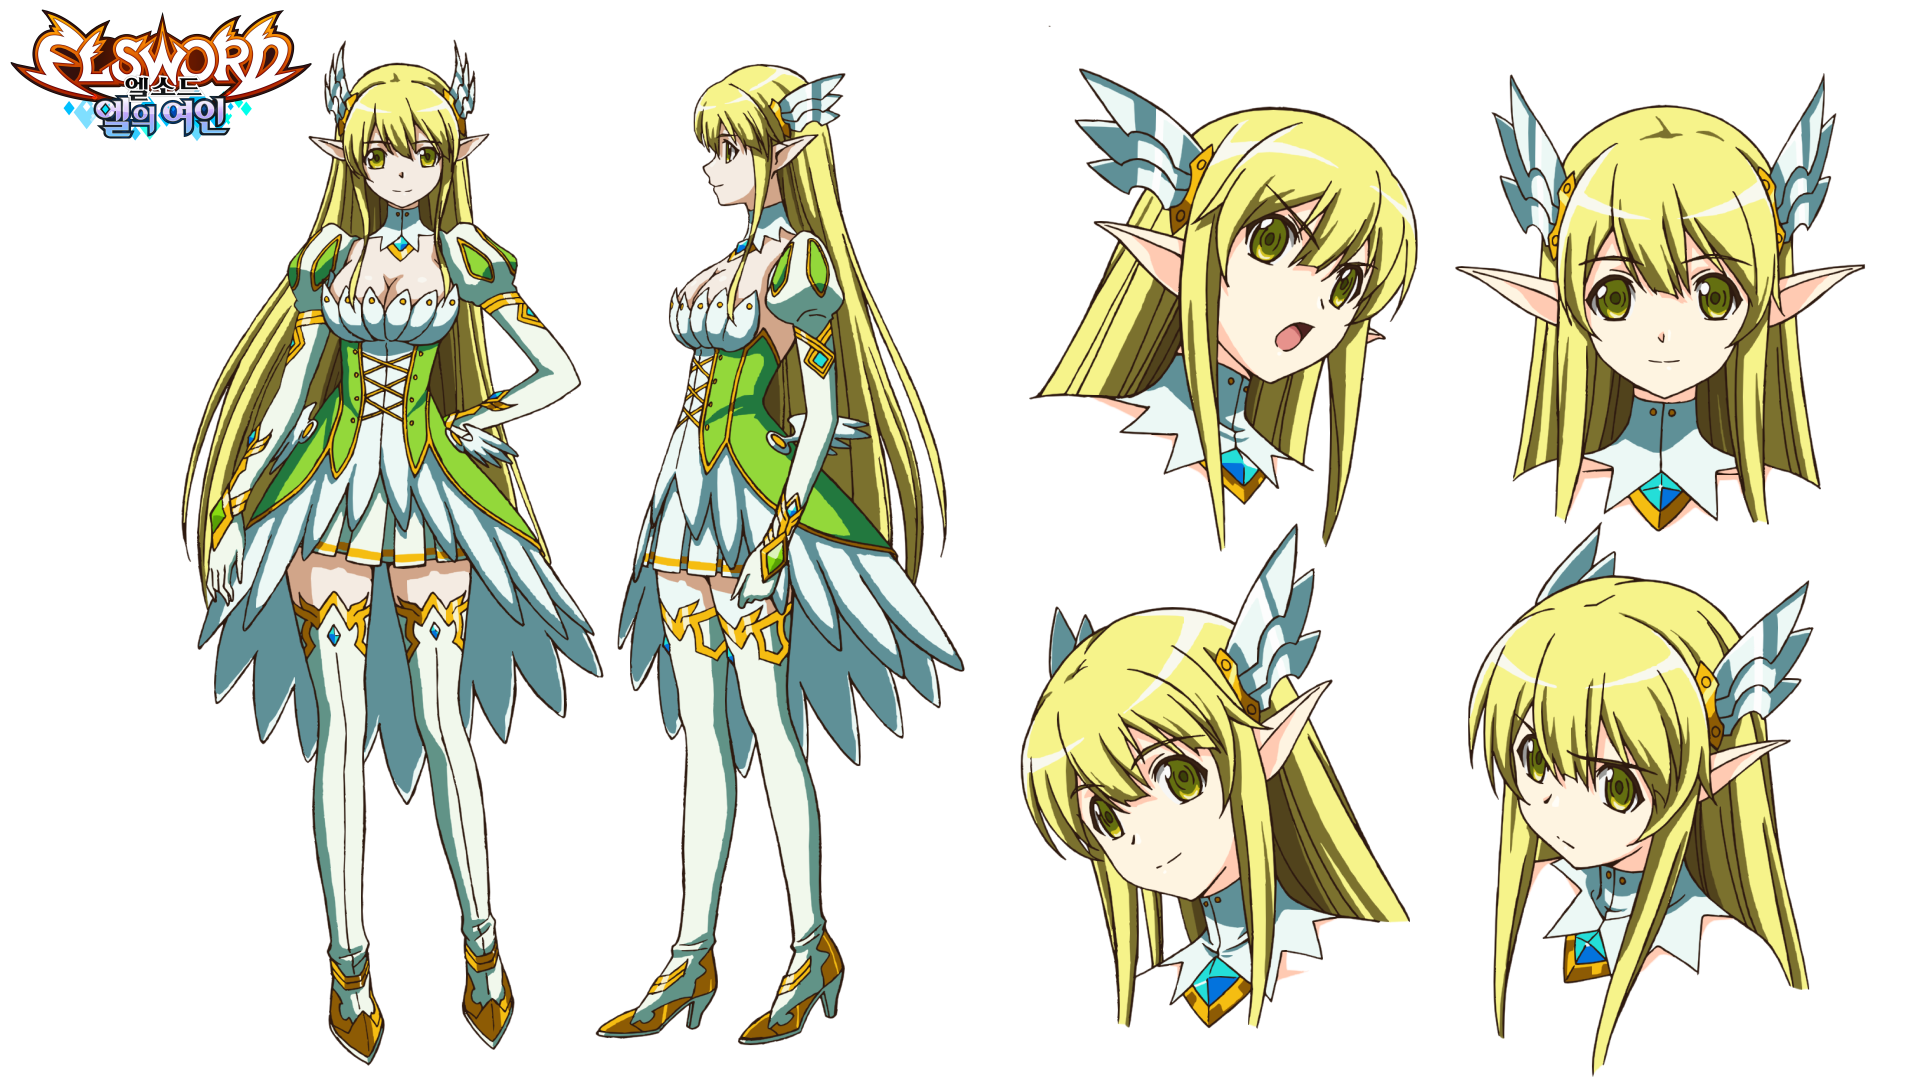 Concept Art For Anime 'El Lady' Which Is Based On The